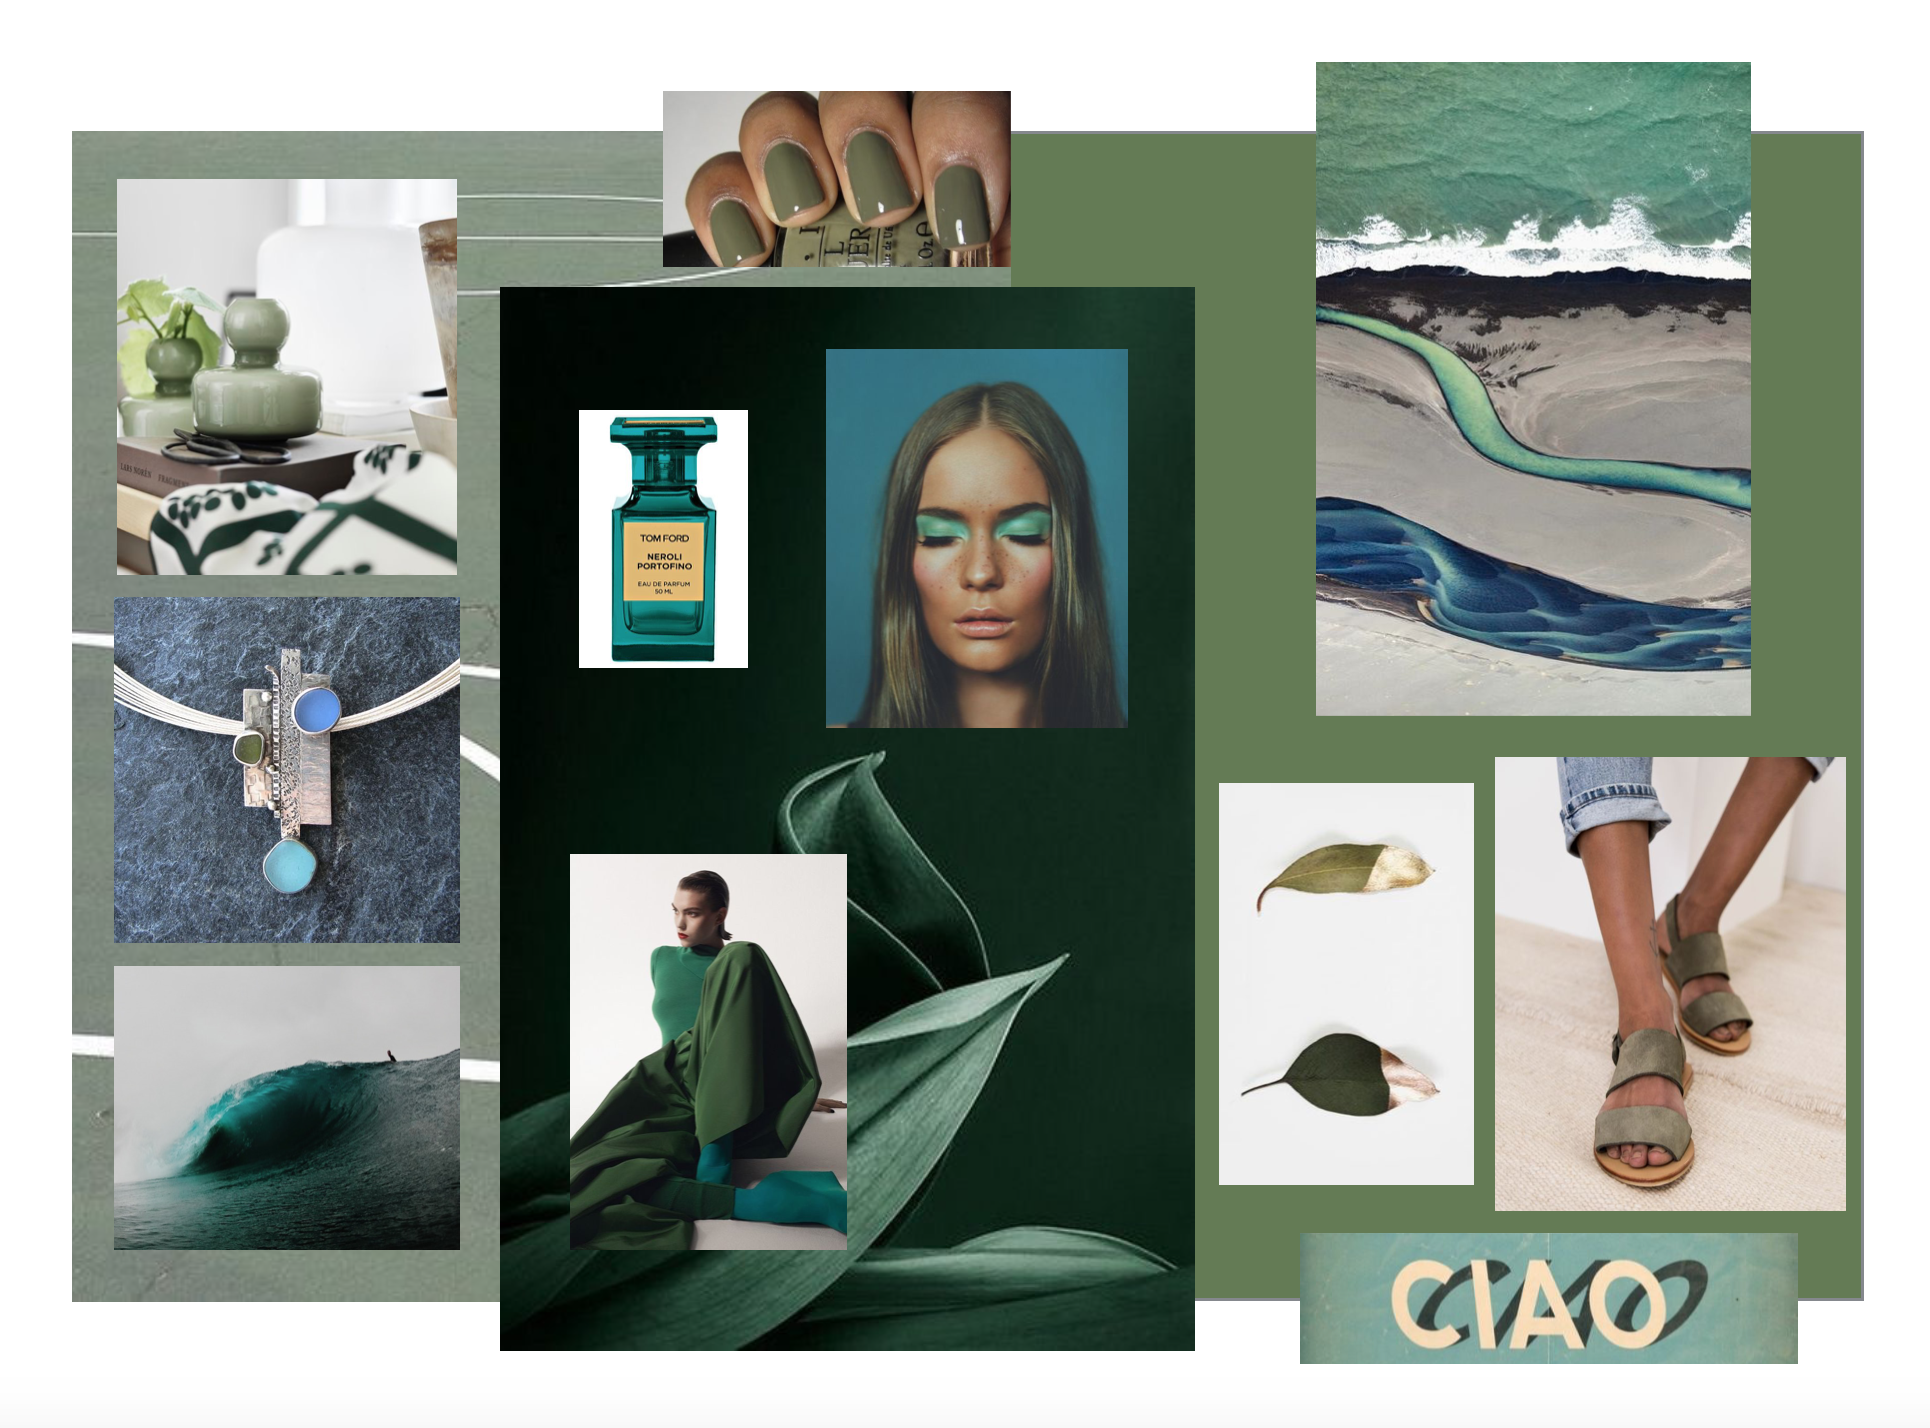 """INSPIRED BY    Left to right:  Marimekko Olive Flower Vase  with  Hortensie   fabric (white & dark green)  /OPI """"Uh oh, roll down the window"""" nail polish /' Iceland' photo by Victoria Rogotneva / Seaglass Jewelry by  Monica Branstrom  /  Tom Ford, Private Blend Neroli Portofino Eau de Parfum / Aqua Eyeshadow /  'We watch as a huge perfect wave passes us by' image by   Kollenda  / Olive wide leg pants and Aqua platform shoes / Gold dipped Green leaves. /  JUN Olive Suede Sandal by St. Agni /  'Ciao' by Anne-Sophie Tschiegg  / Tennis Courts / The colors, Olive and Aqua."""